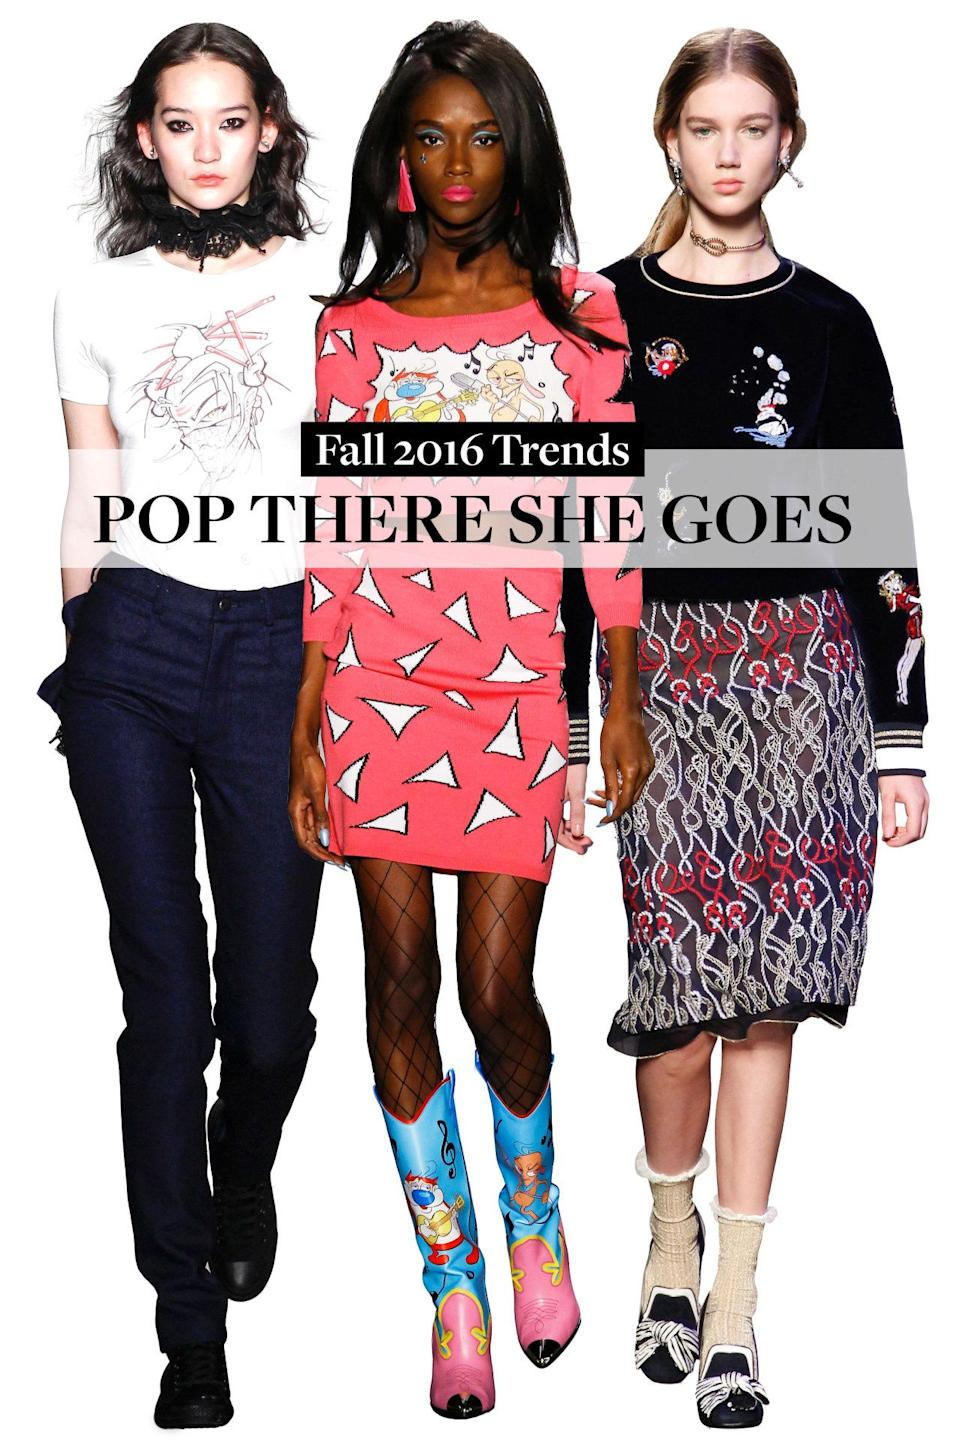 <p>Who says fashion has to be serious? We're seeing doodles and cartoons worn loud and proud!</p>